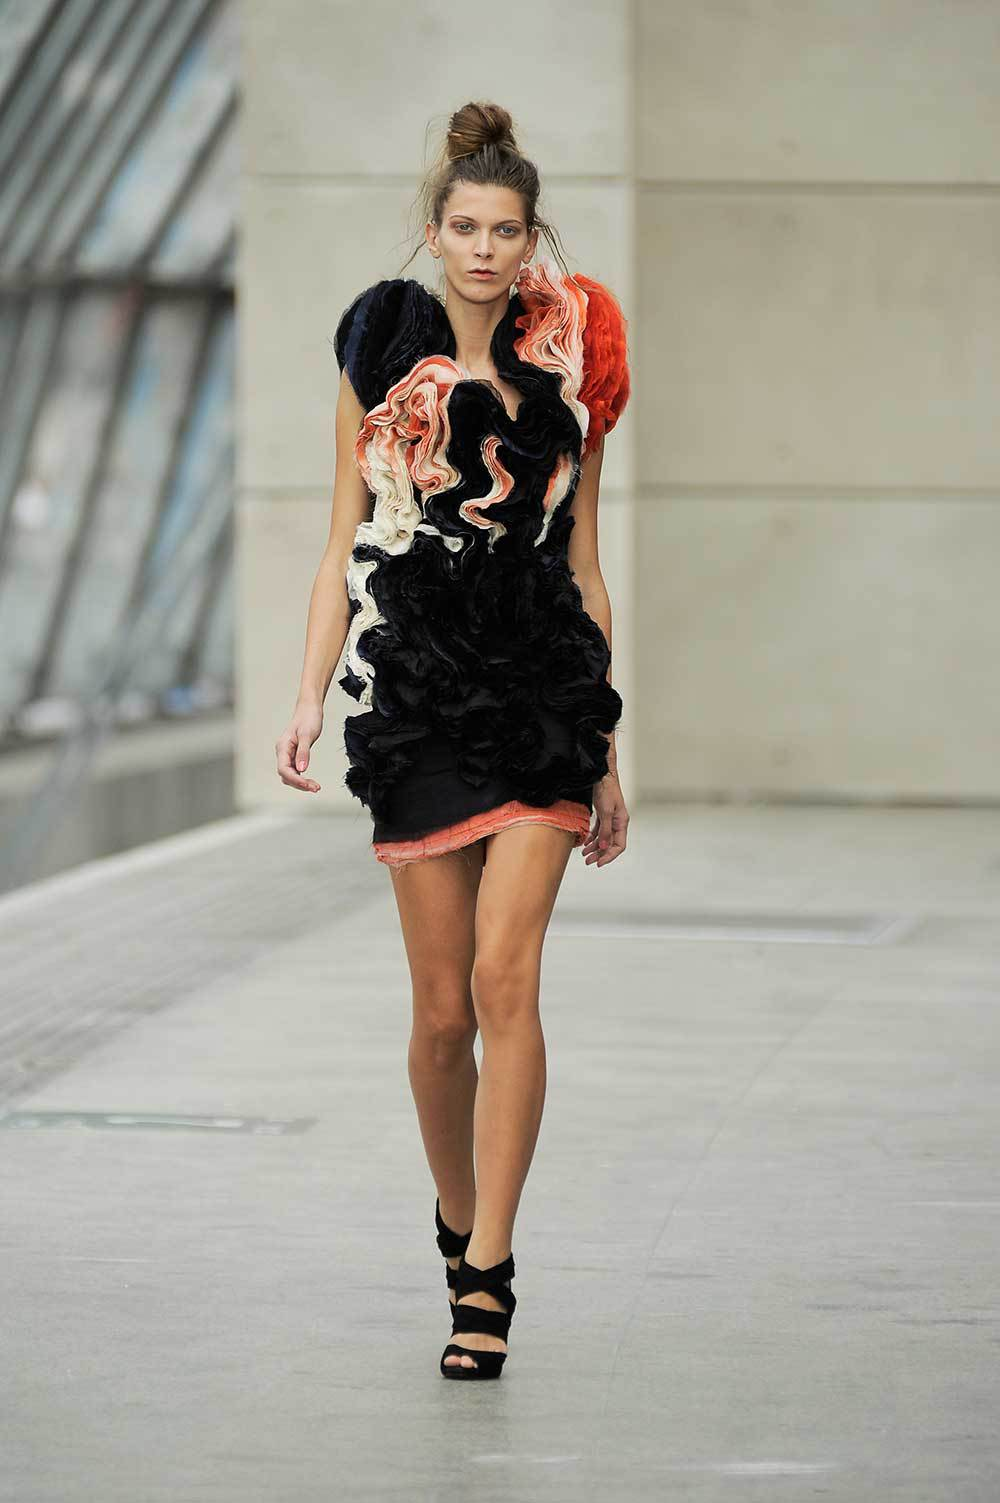 Felicity-Brown-SS11-12-Rose-Ruffle-Dress.jpg